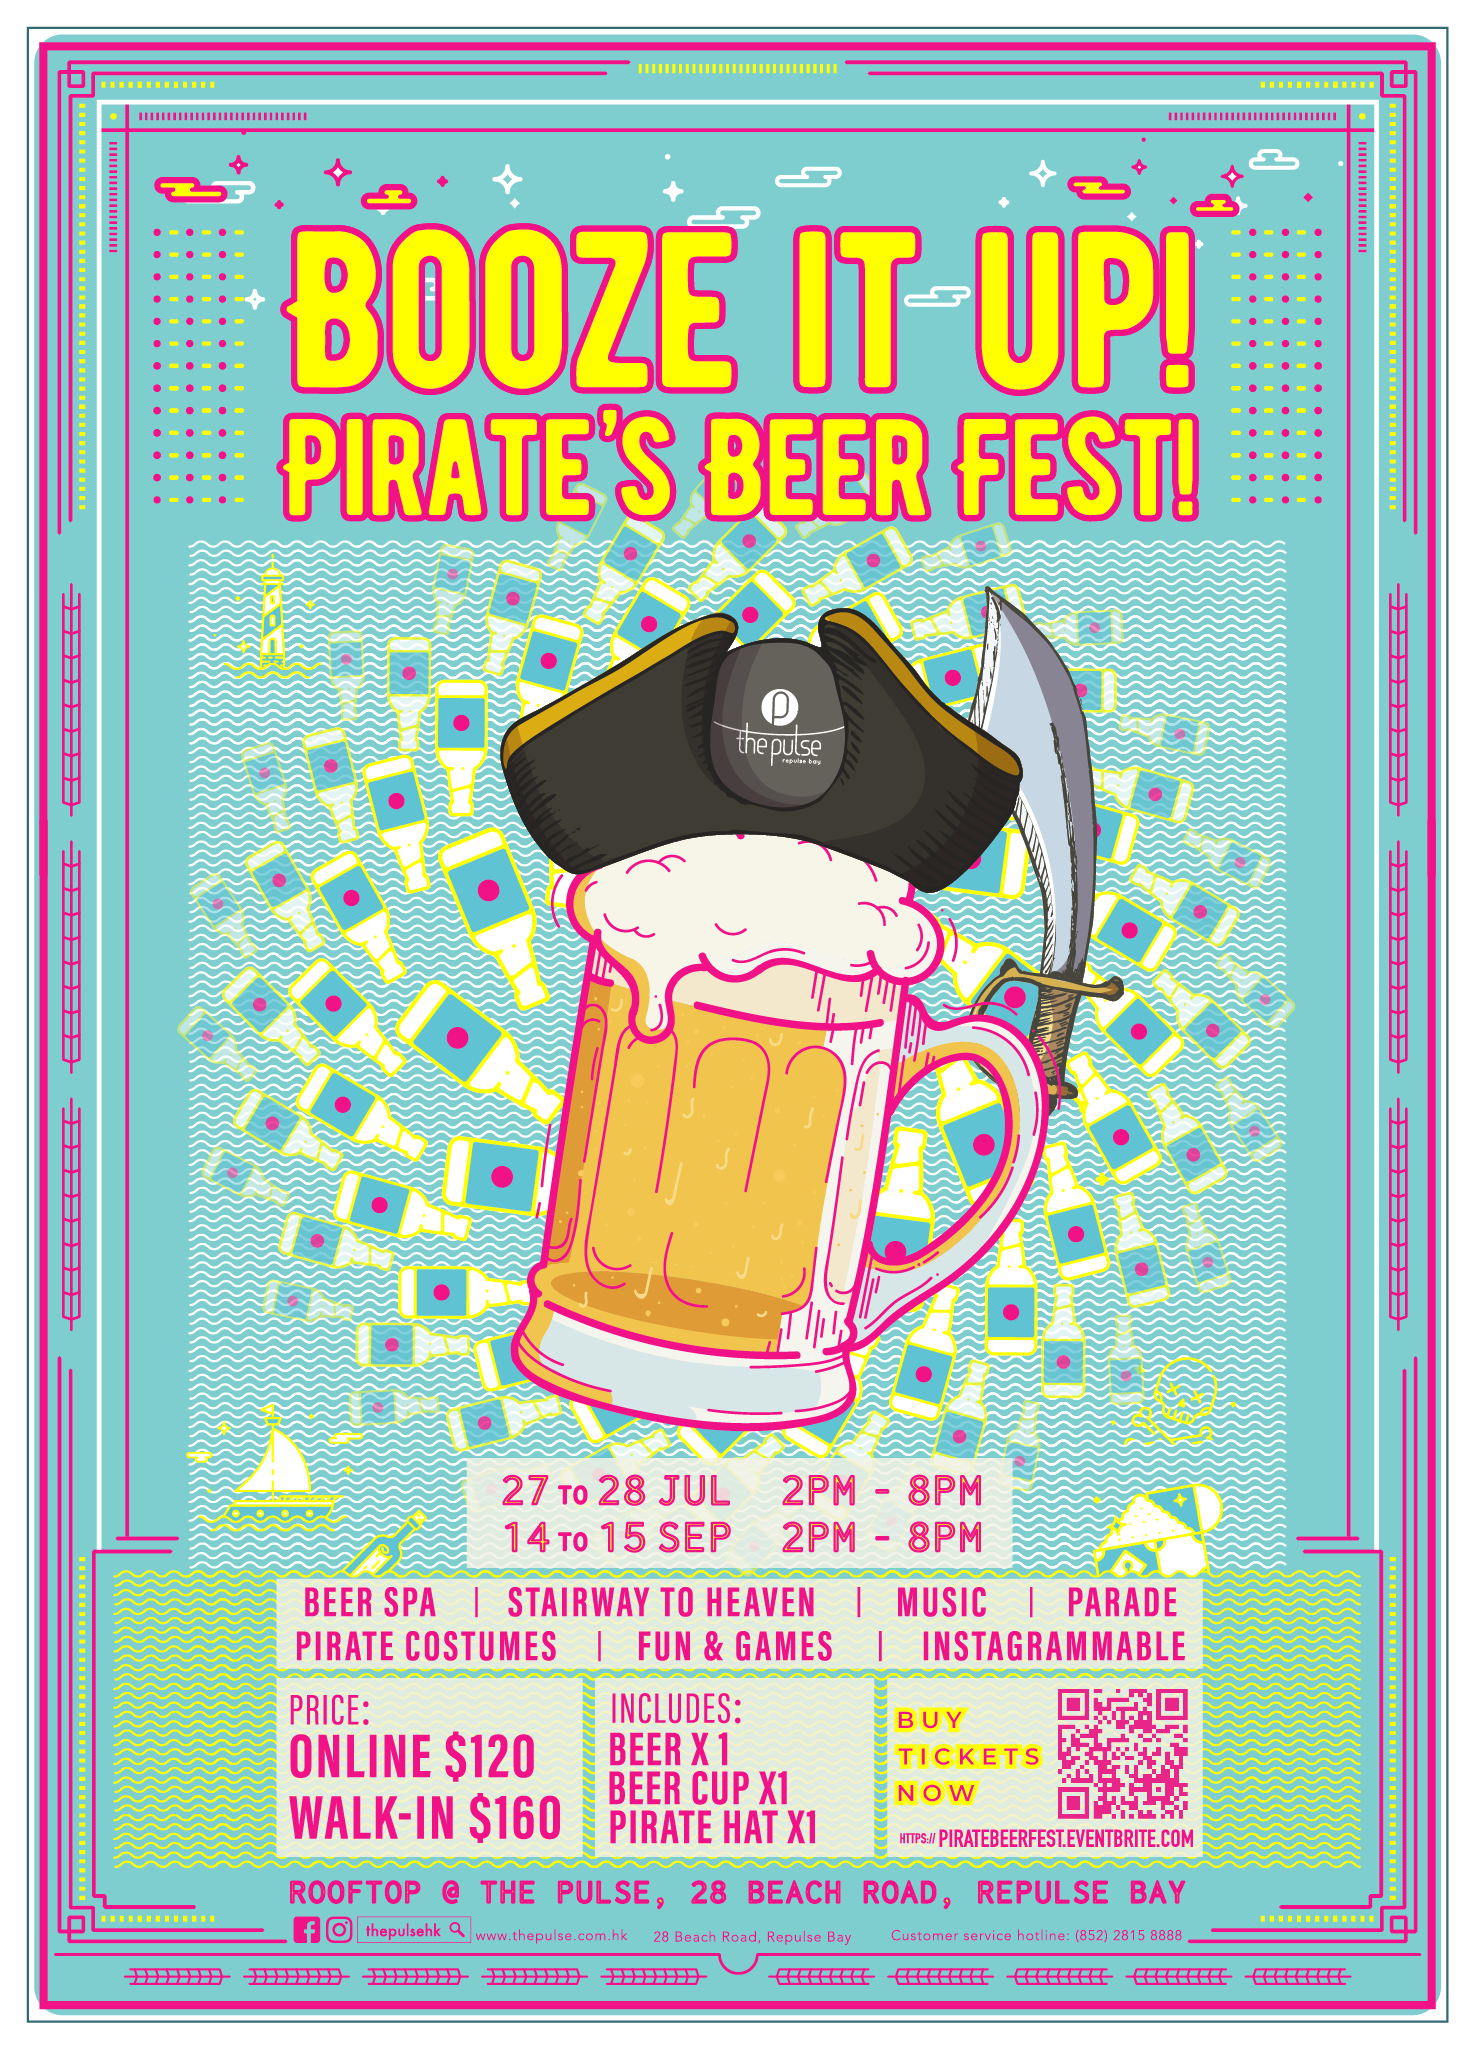 "Booze it up! Pirate's Beer Fest! - Date: 27-28 Jul 2-8pm &14-15 Sep 2-8pmVenue: Rooftop, 28 beach road, the pulse, repulse bayWhat's in it for you?:A Bottle of the pulse x Citibrew: ""Endless Pirate's Beer""A macho muscle/ bikini body beer glass (that you can customise)Live bandFun &GamesInstragram fodderBeer competition (15th exclusive)Bartending performance (15th exclusive)A good timeTickets now: https://piratebeerfest.eventbrite.com"